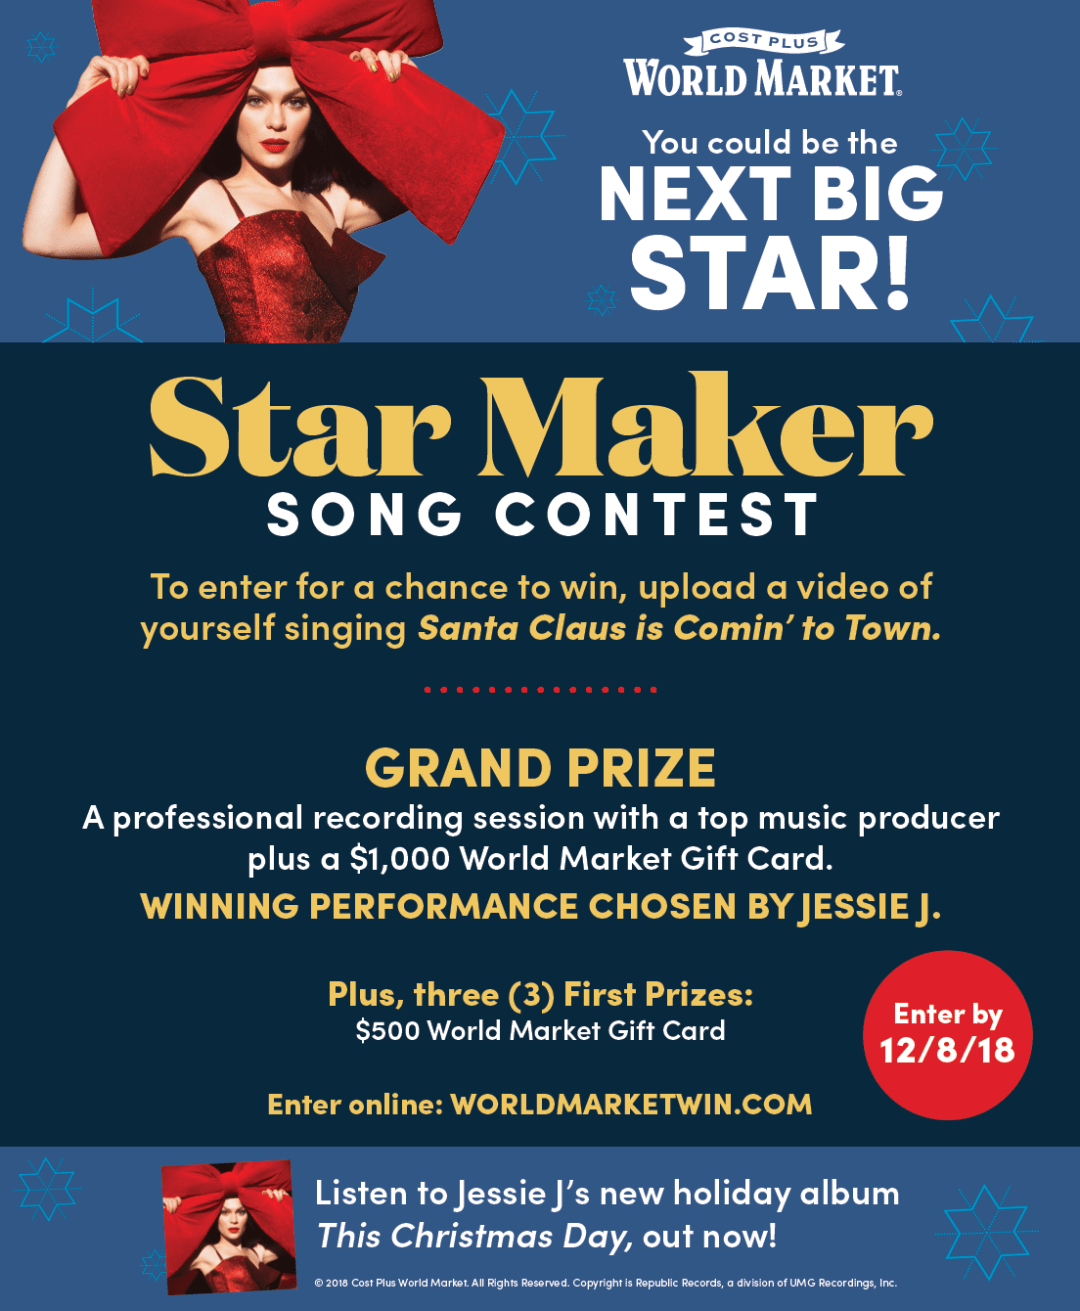 Star Maker Song Contest Image